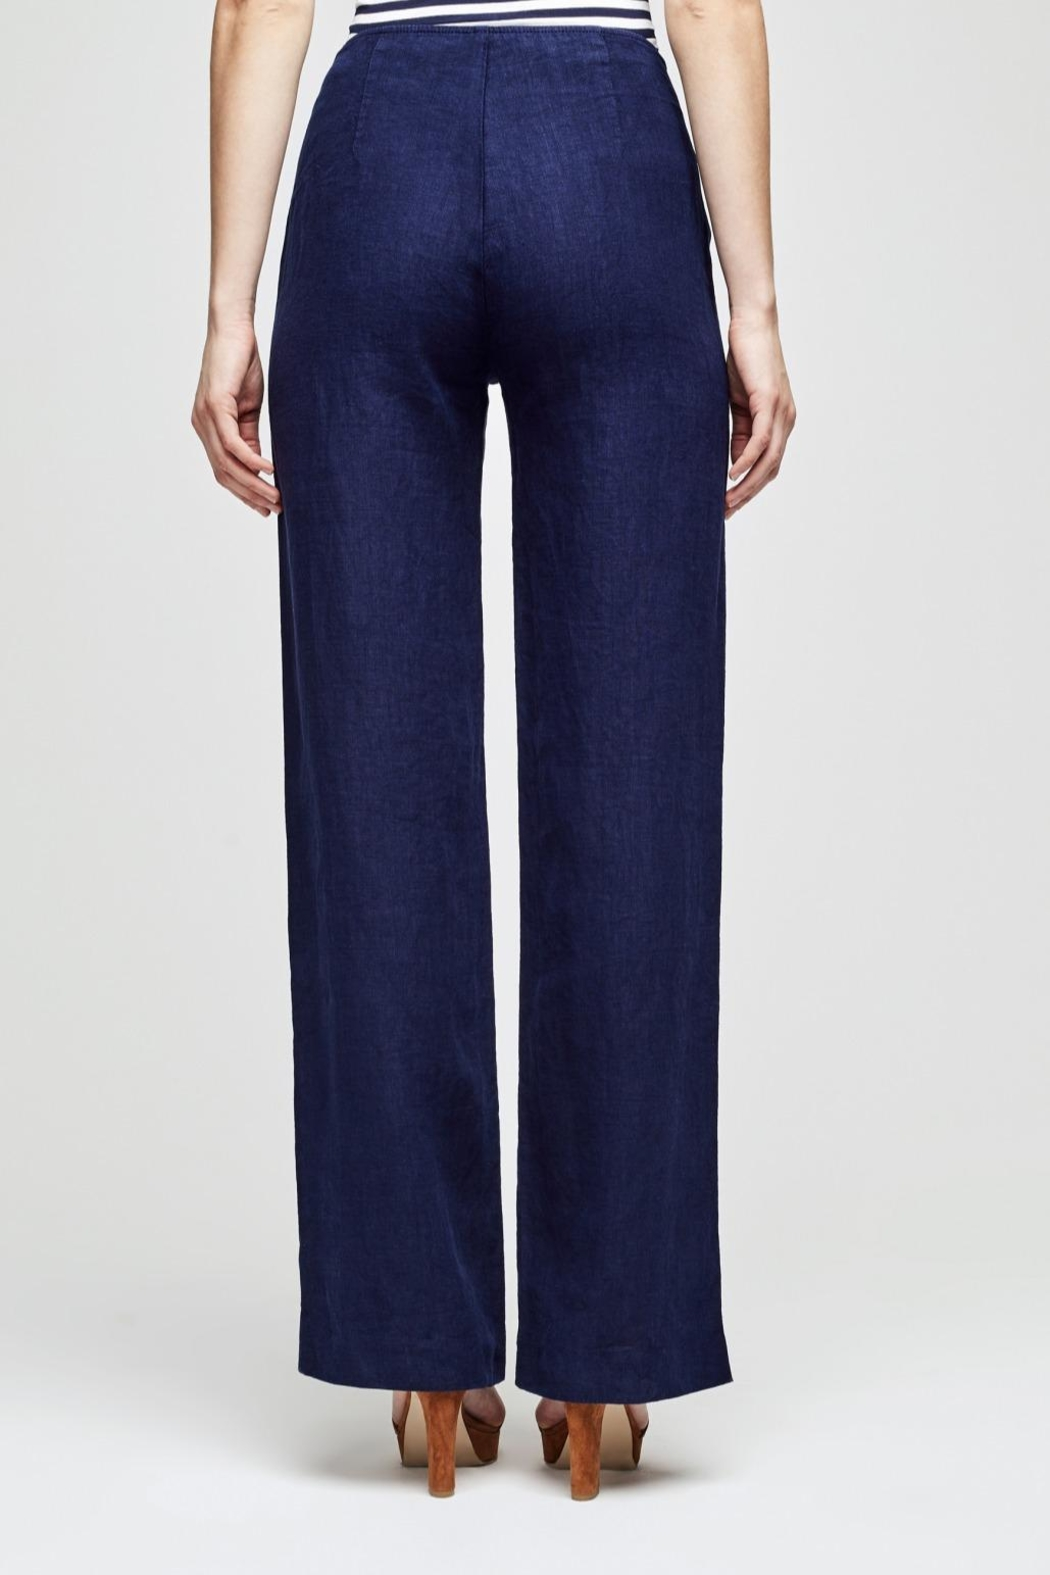 L'Agence Dee Sailor Pant - Front Full Image